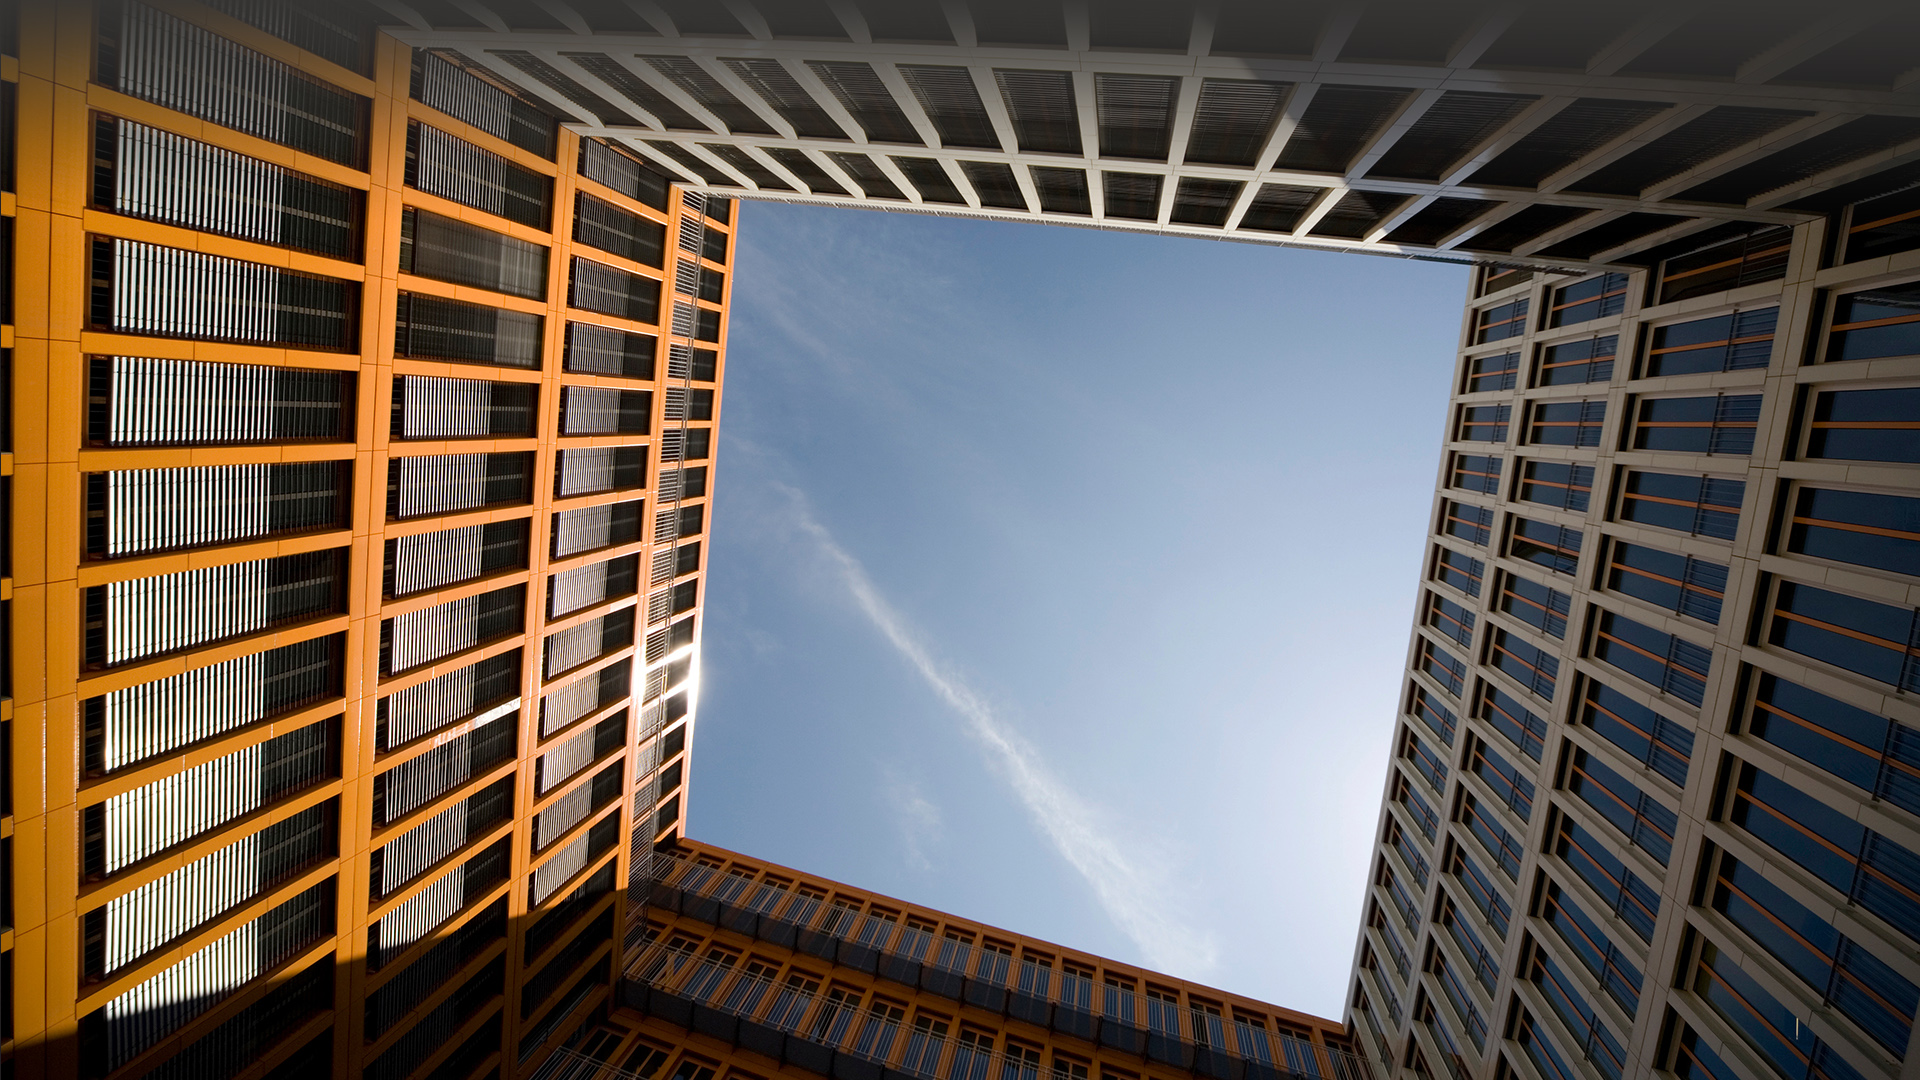 Office building against clear sky | Windows 10 SpotLight Images